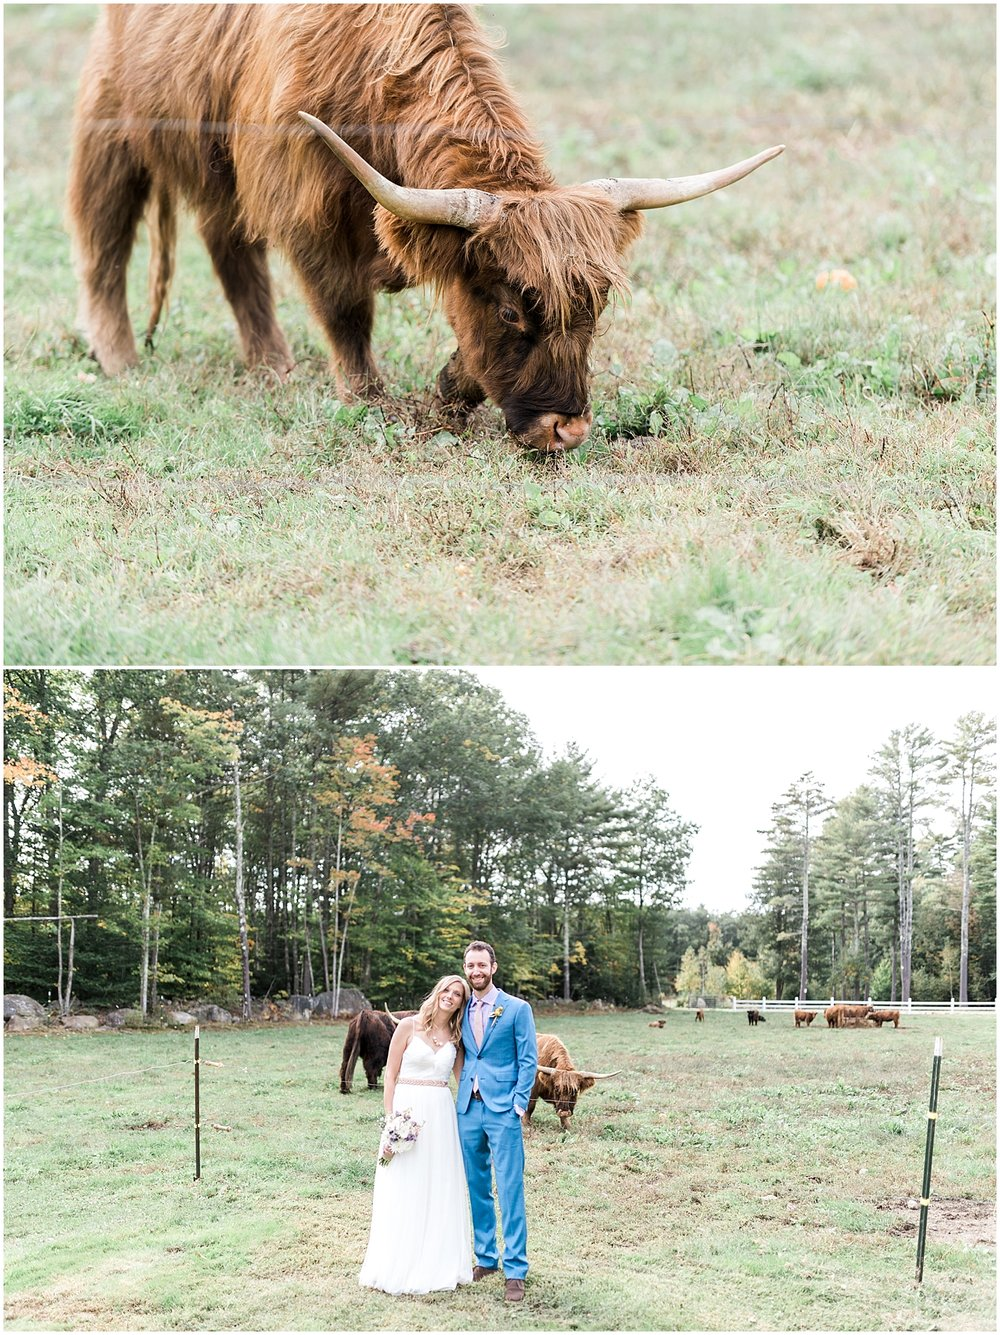 Bride and Groom Tumbledown Farm Photos by Alyssa Parker Photography